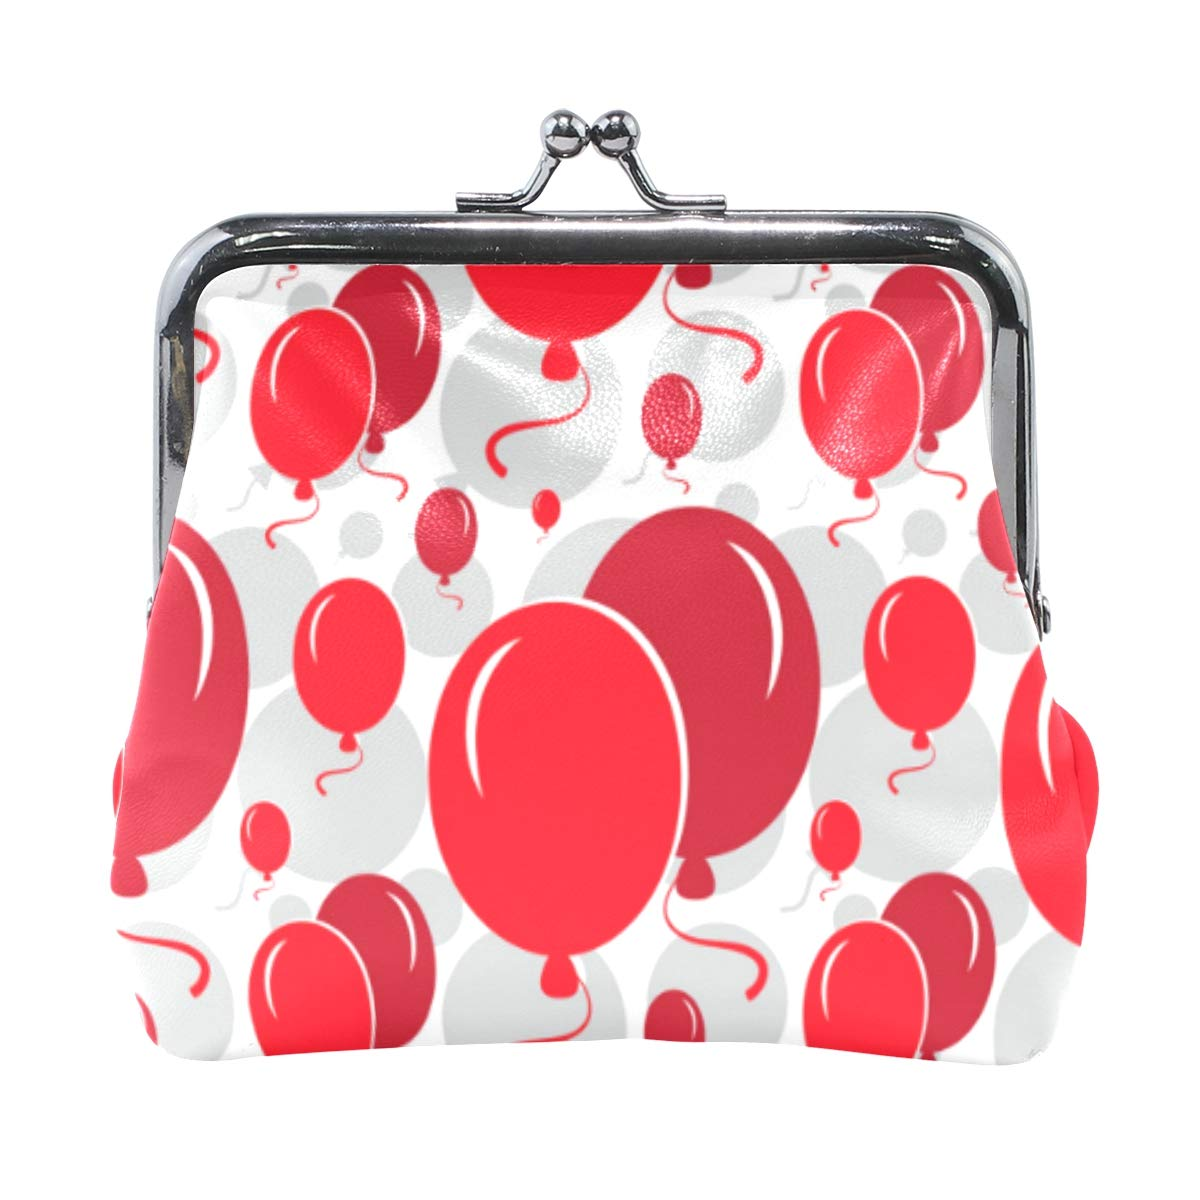 Red Balloons Happiness Coin Purse Buckle Vintage PU Pouch Kiss-lock Wallet for Women Girl